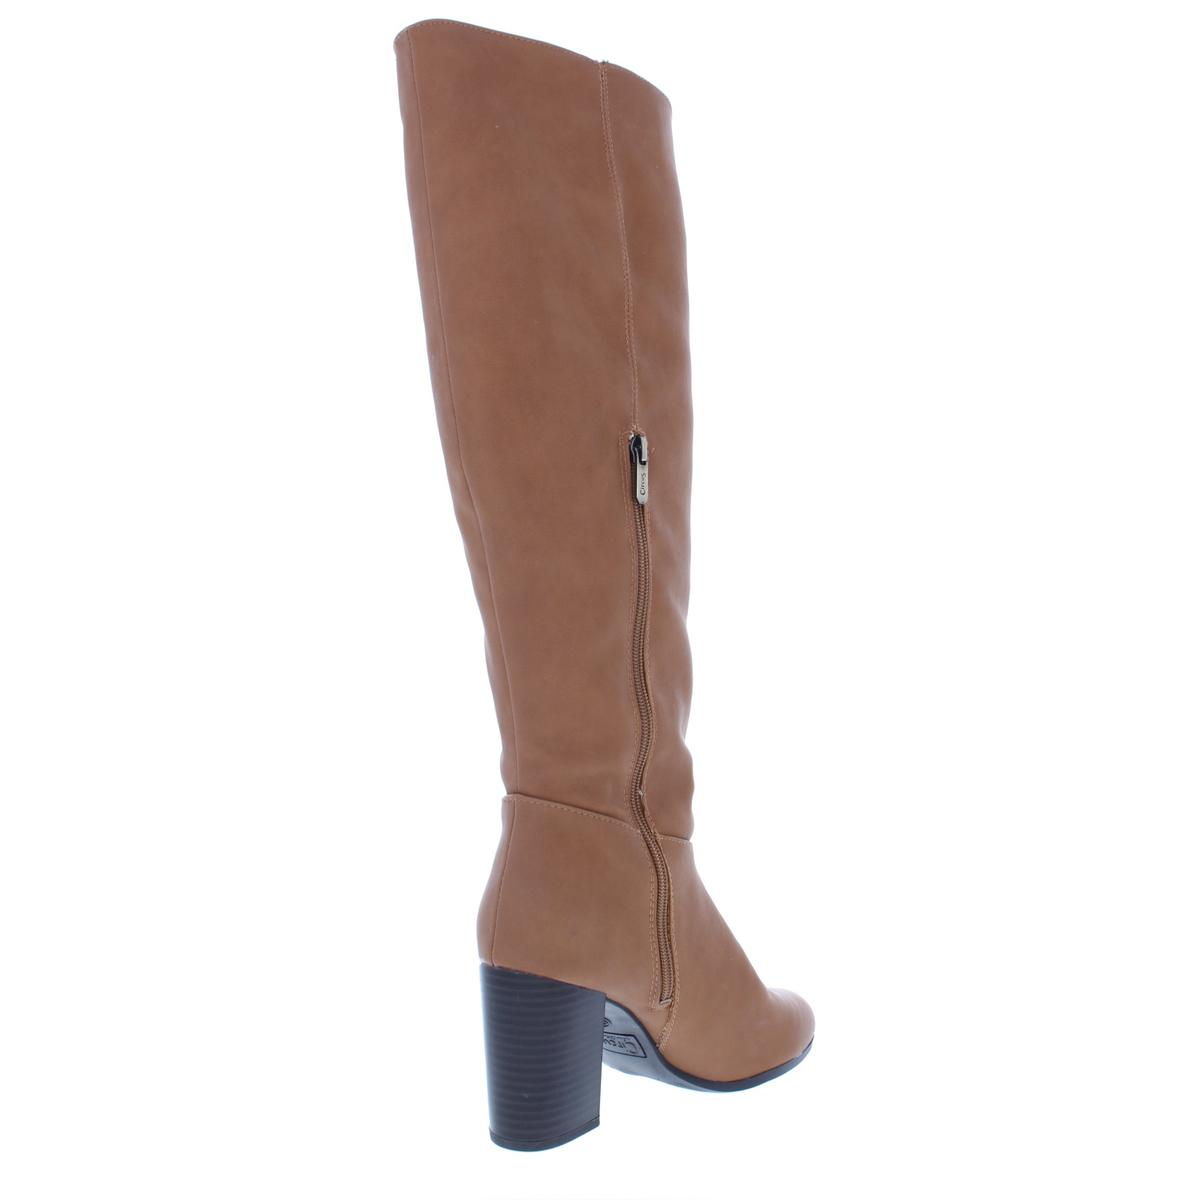 b1a410d23c96f ... Picture 3 of 3. Circus by Sam Edelman Womens Sibley Brown Riding Boots  10 Medium ...